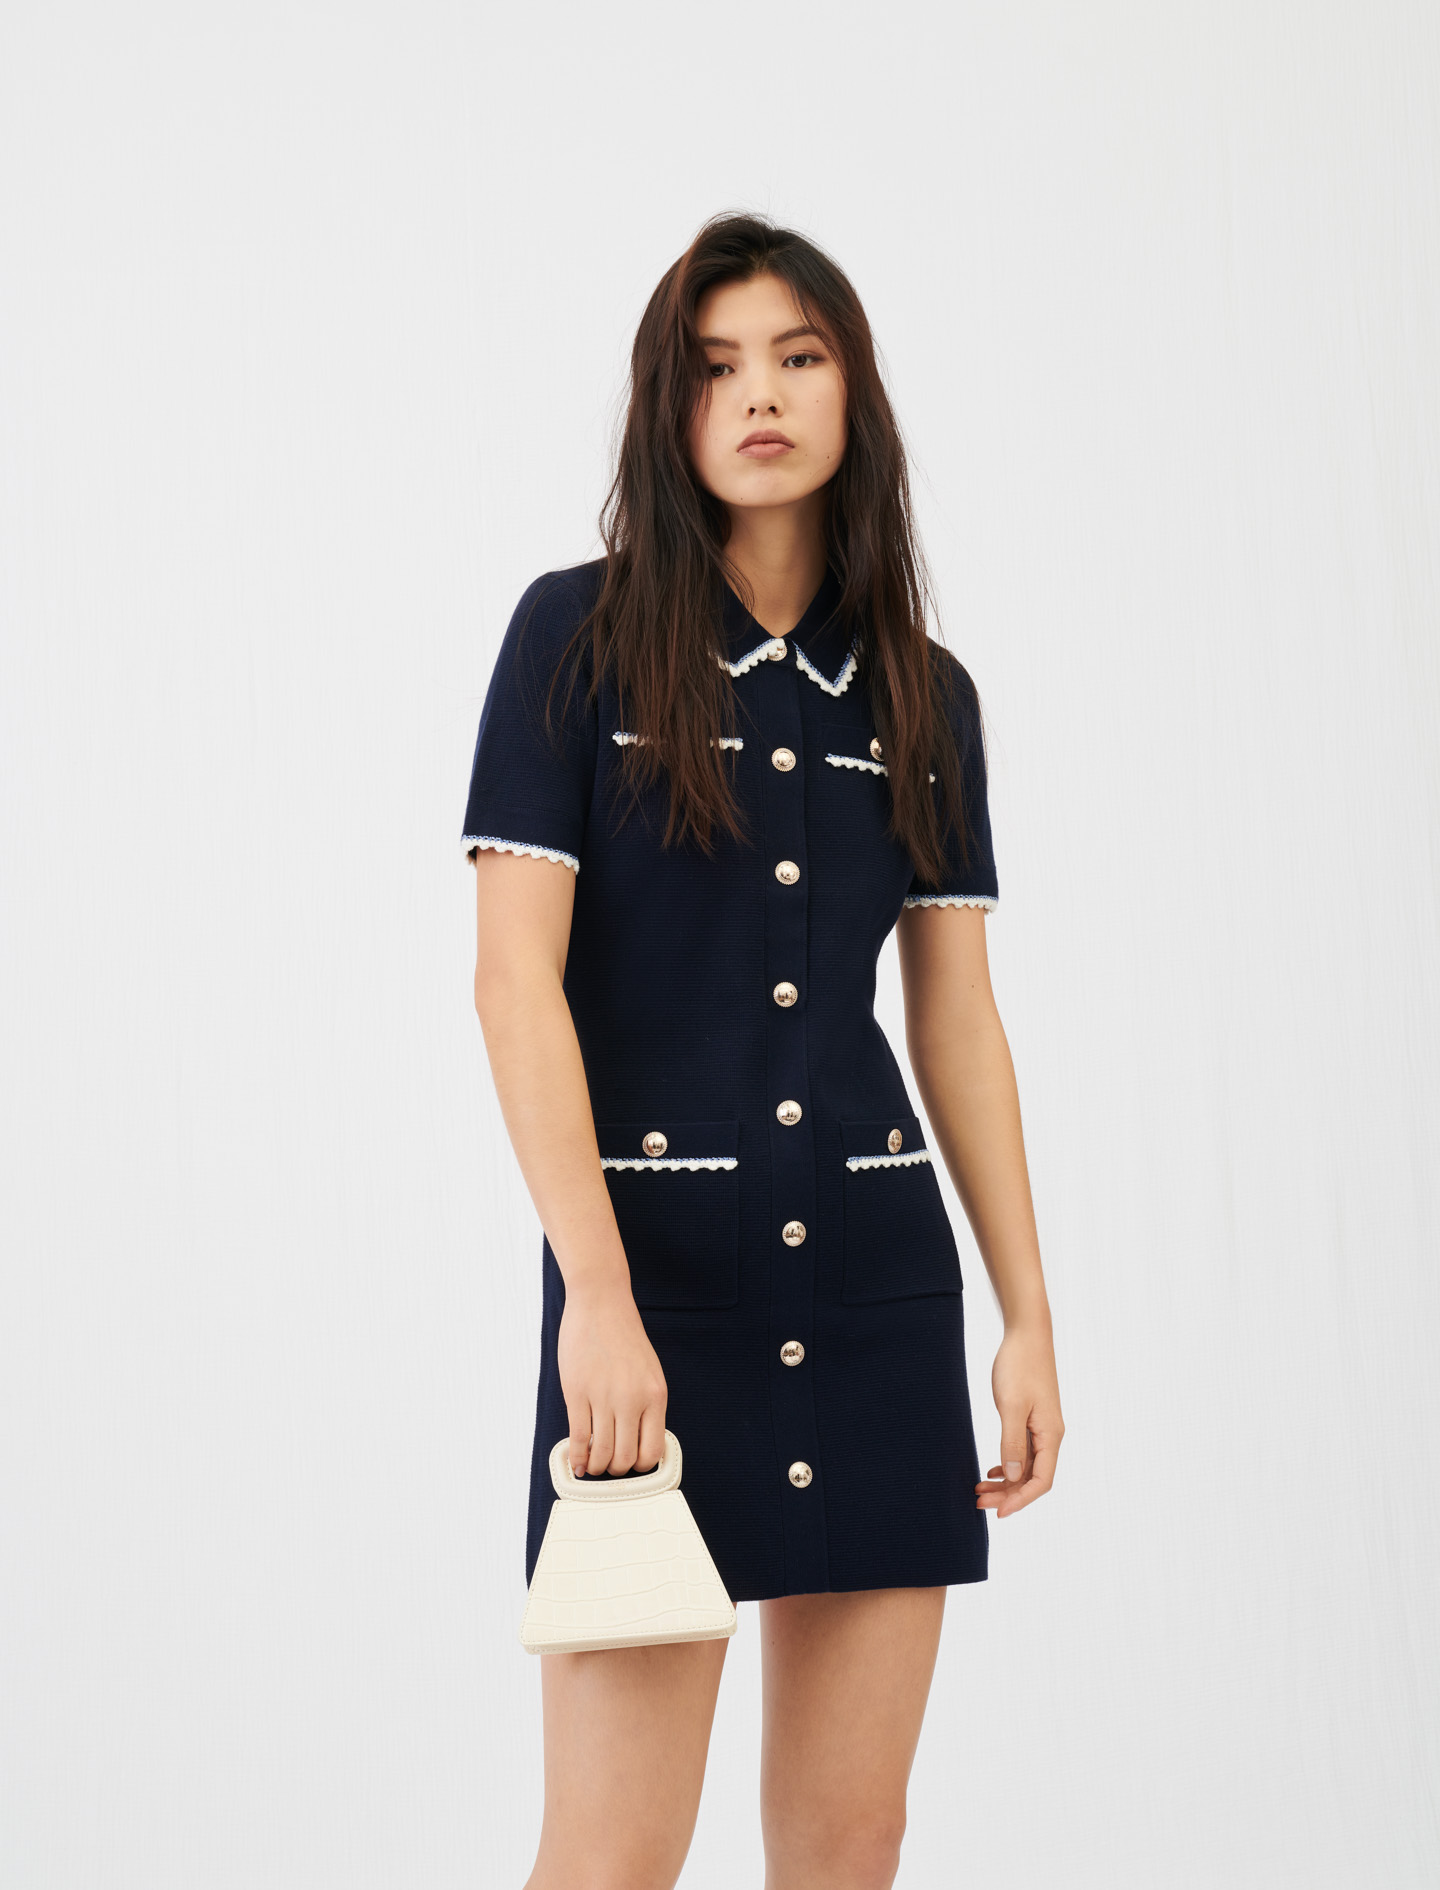 Maje Navy Knit Dress